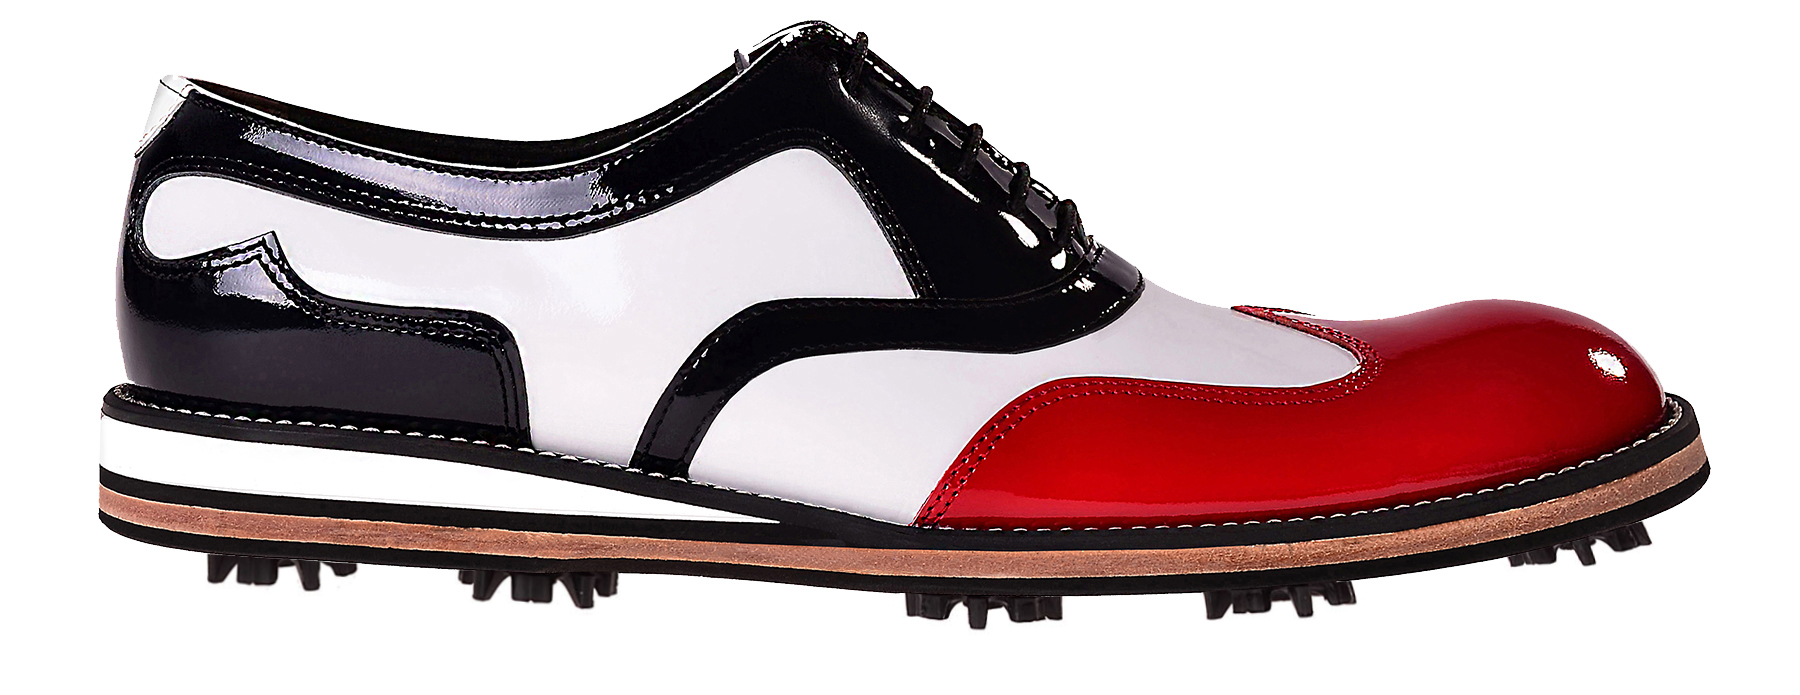 Handmade Oxford Golf Shoes